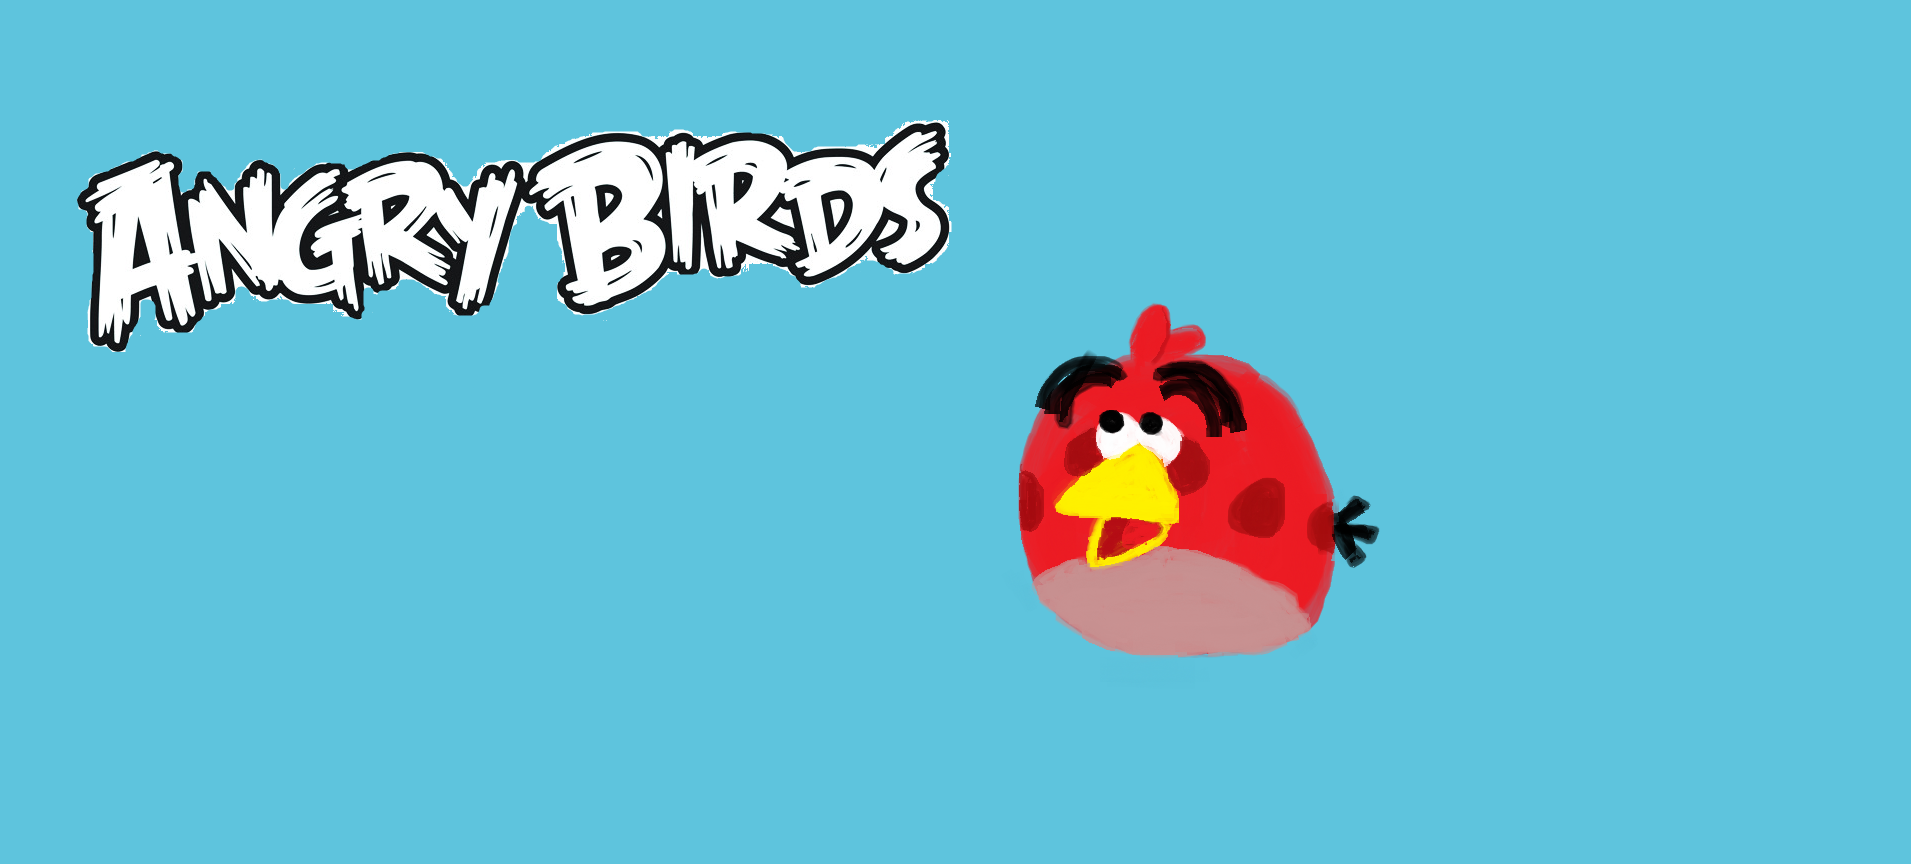 Archivo:Angry Birds.png